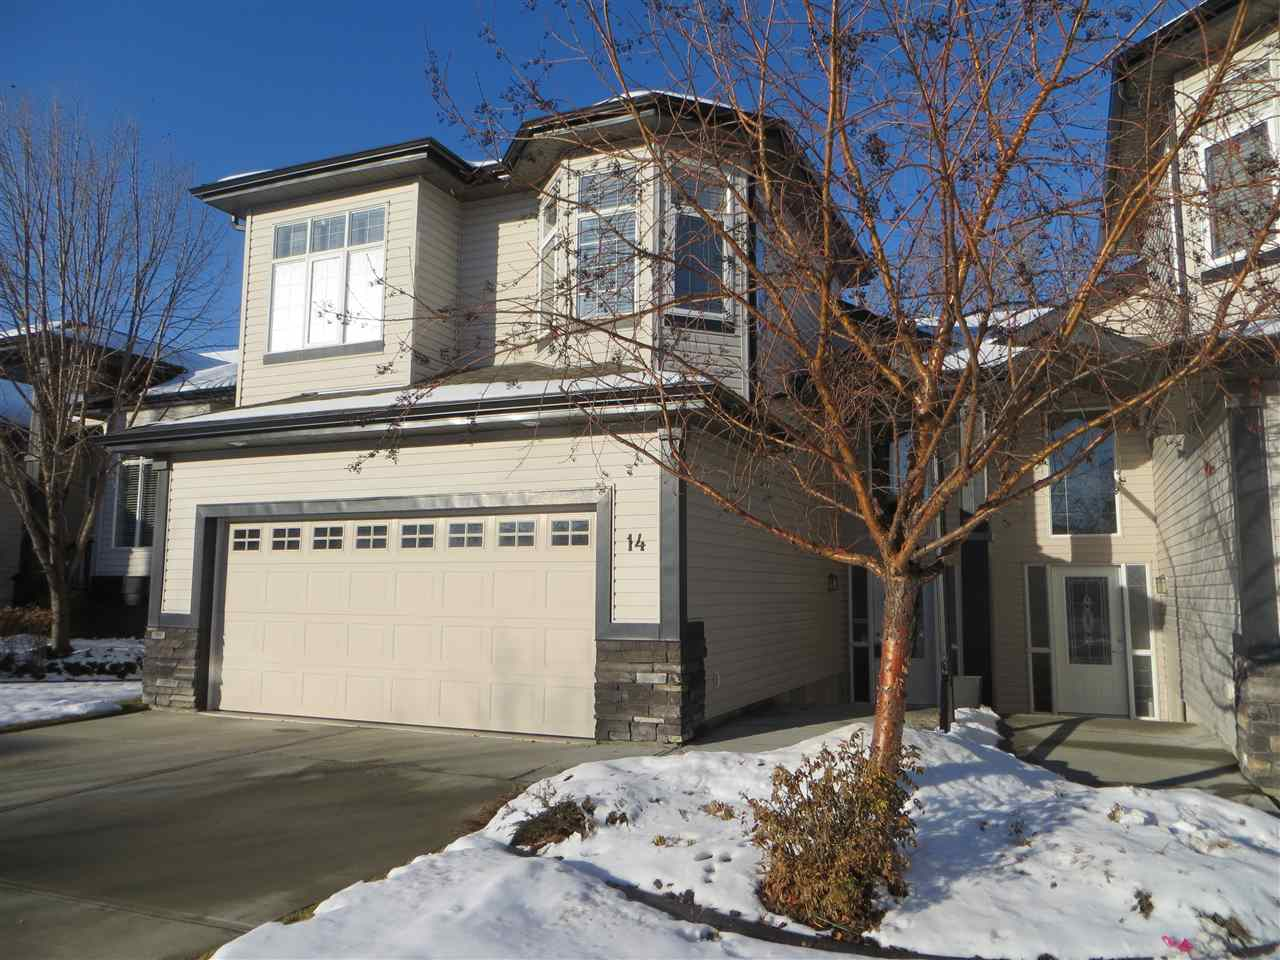 This bi-level style duplex condo is located in Rutherford with nearby schools, shopping, grocery amenities, quick access to the Henday and under construction LRT park & ride, minutes from future site of new hospital. Maintenance free exterior; condo fees cover snow removal, landscaping, irrigation and exterior maintenance. Natural gas BBQ hook up on deck; prime location backs onto a quiet acreage, ideal for privacy. Main floor features open concept formal dining room, living room with fireplace, nook and kitchen along with a full bath and bedroom. Upstairs is your master retreat with spacious bedroom, ensuite with soaker tub, separate shower and walk-in closet. Lower level has large rec room, two bedrooms and full bath along with large laundry room and storage under stairs. Stainless steel appliances, granite countertops in kitchen, undermount cabinet lighting, air conditioned. Spacious foyer entryway and large double attached garage; garage floor has had coating applied in last two years.